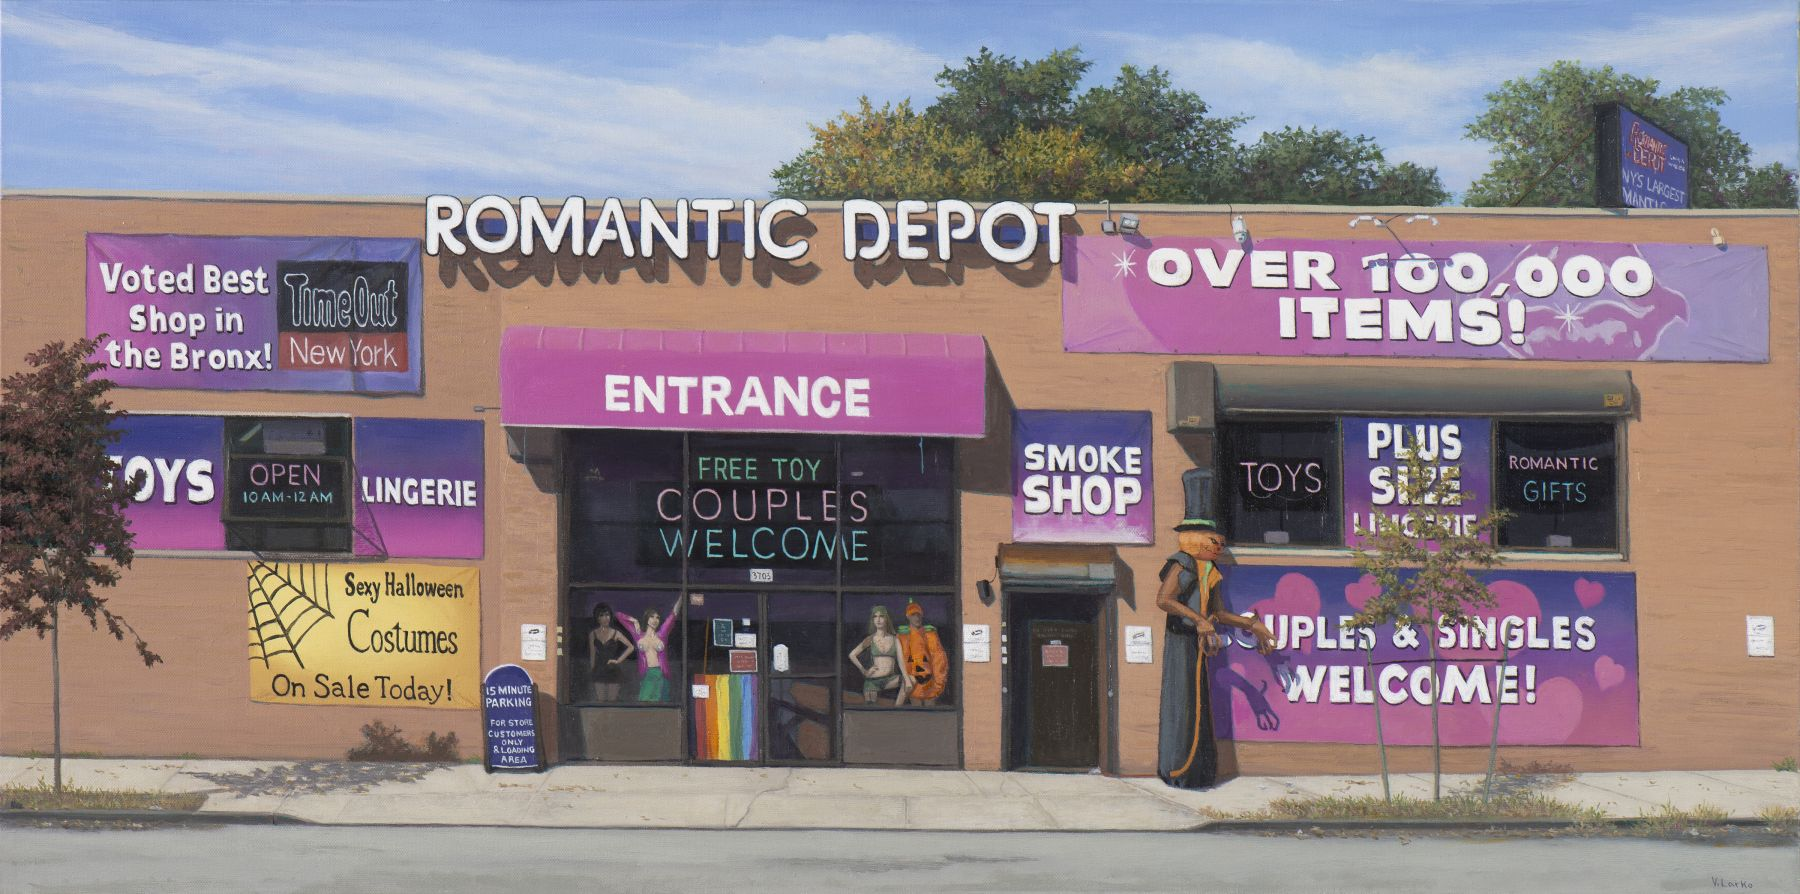 Valeri Larko painting titled Halloween at the Romantic Depot, Bronx, 2018, oil on canvas, 18 x 36 inches imagery ubran landscape featuring one story retail outlet Romantic Depot